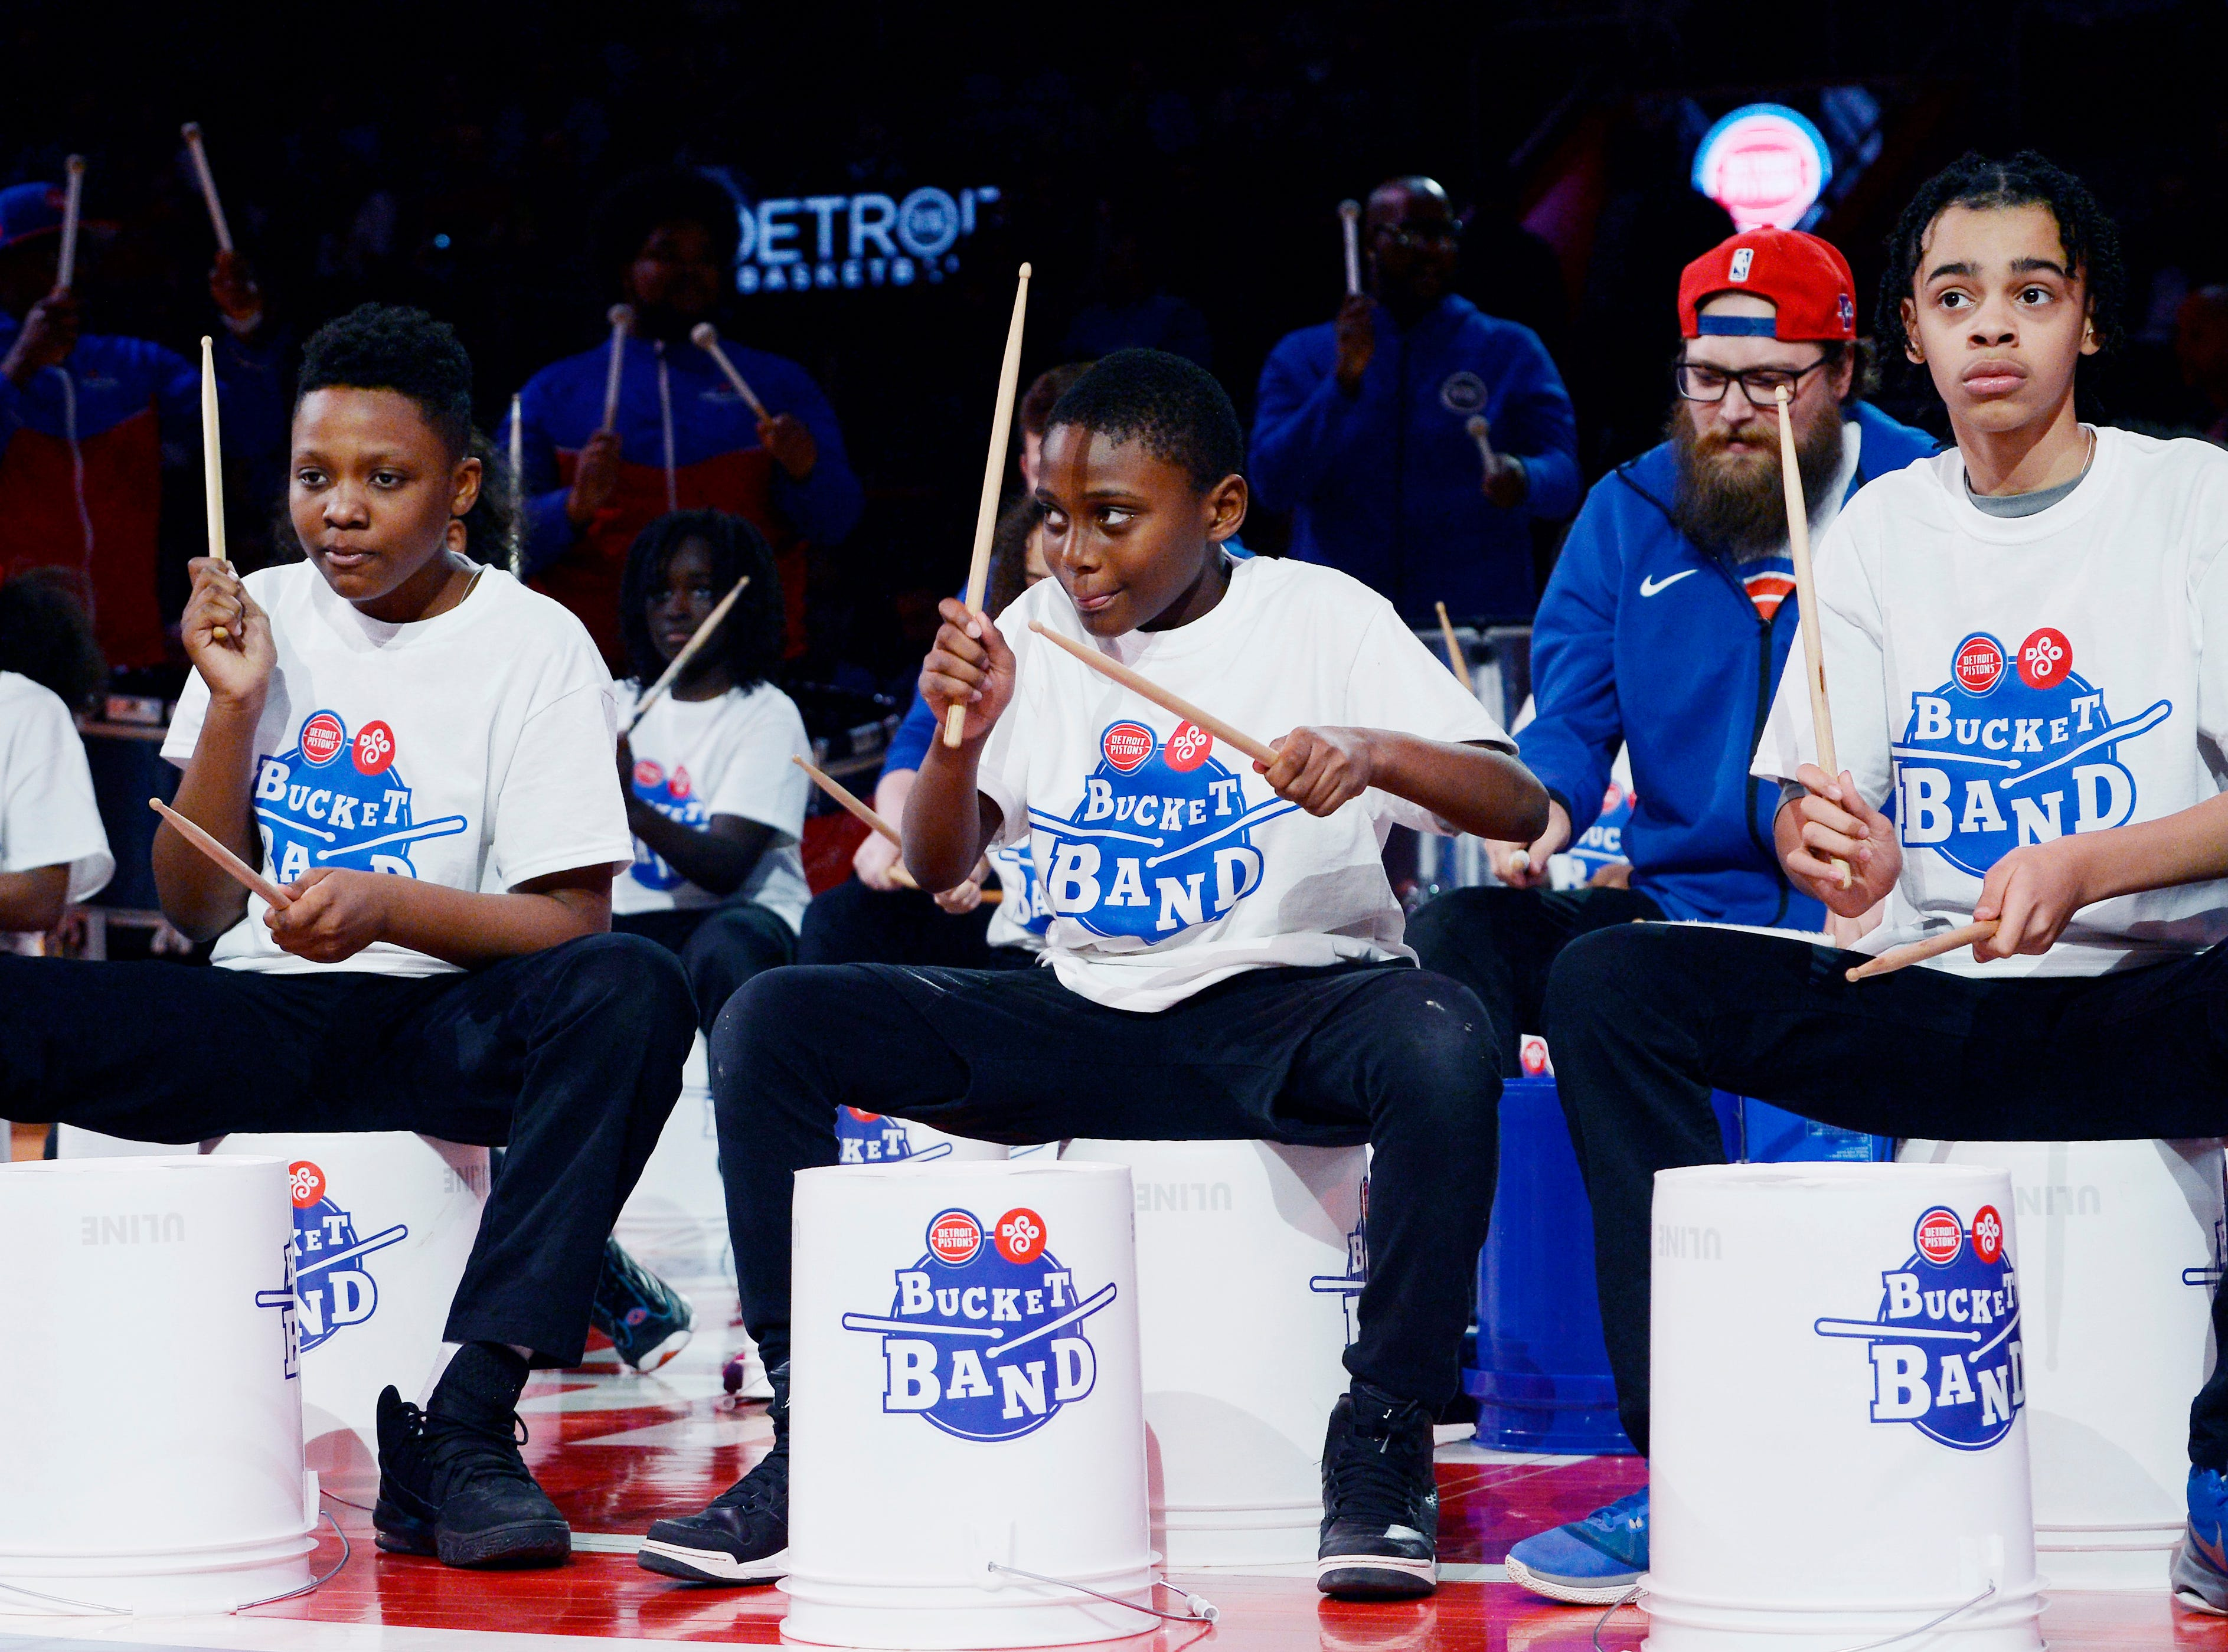 Detroit Symphony Orchestra Bucket Band members performs during a timeout in the second quarter.